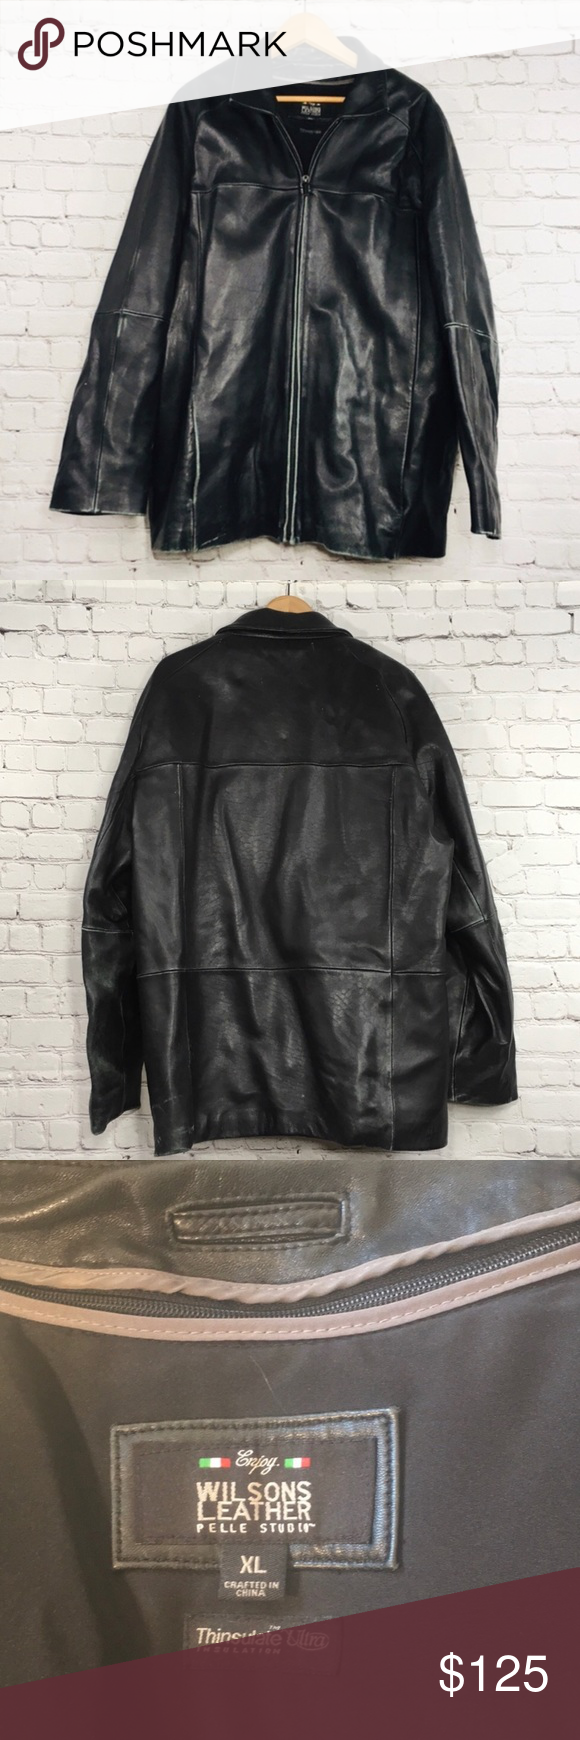 Mens Wilsons Leather Jacket Pelle Studio Jacket XL